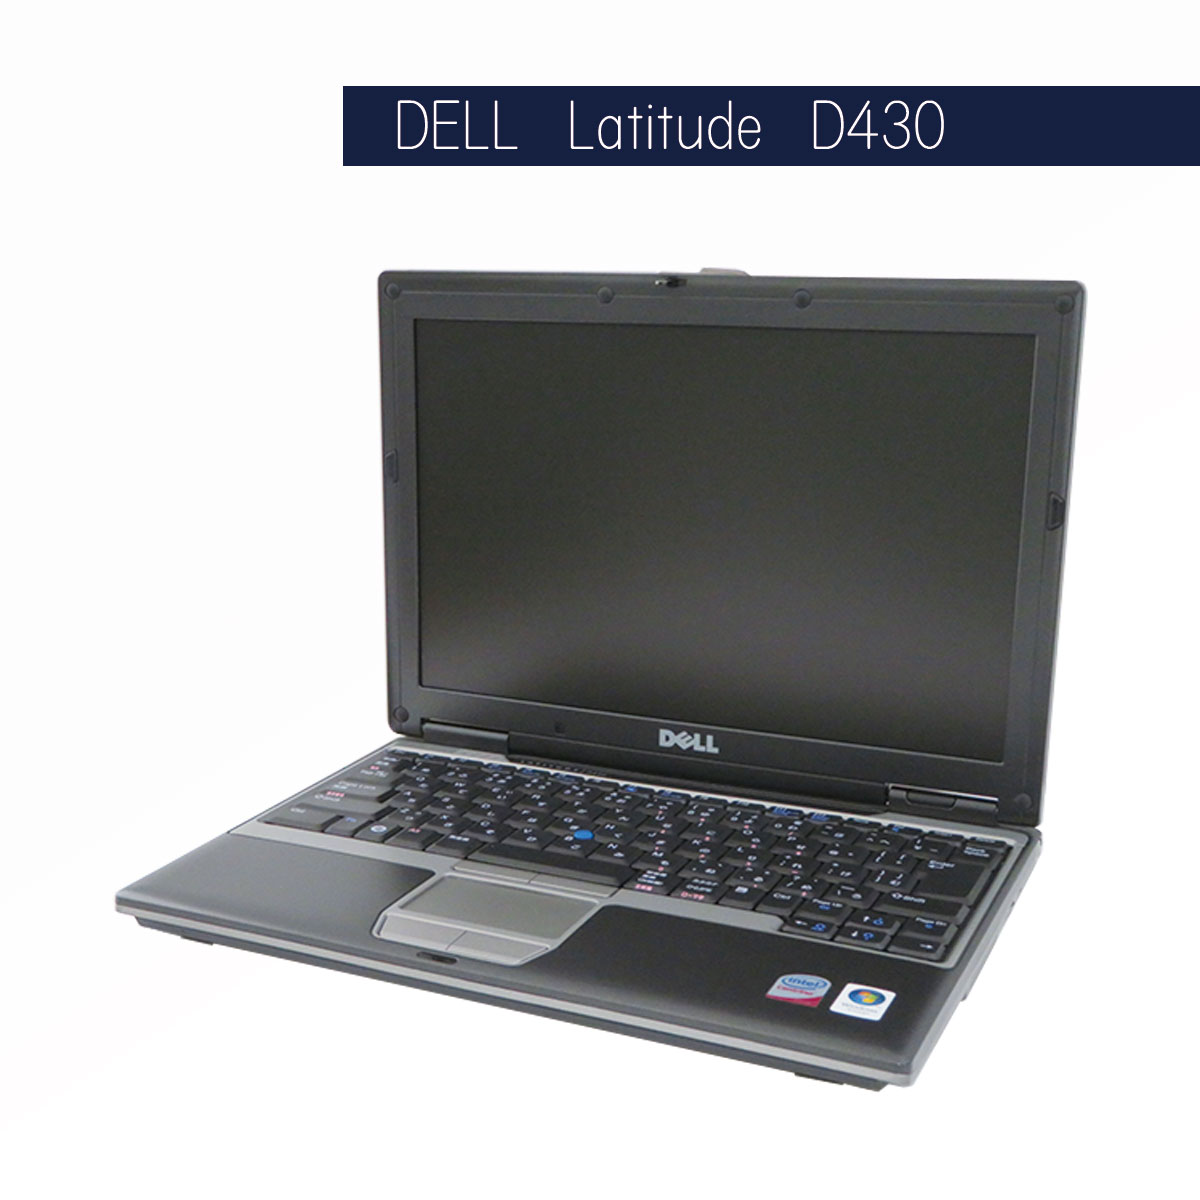 DELL Latitude D430 Core2Duo U7700 2GB 60GB(WinXP) WLAN